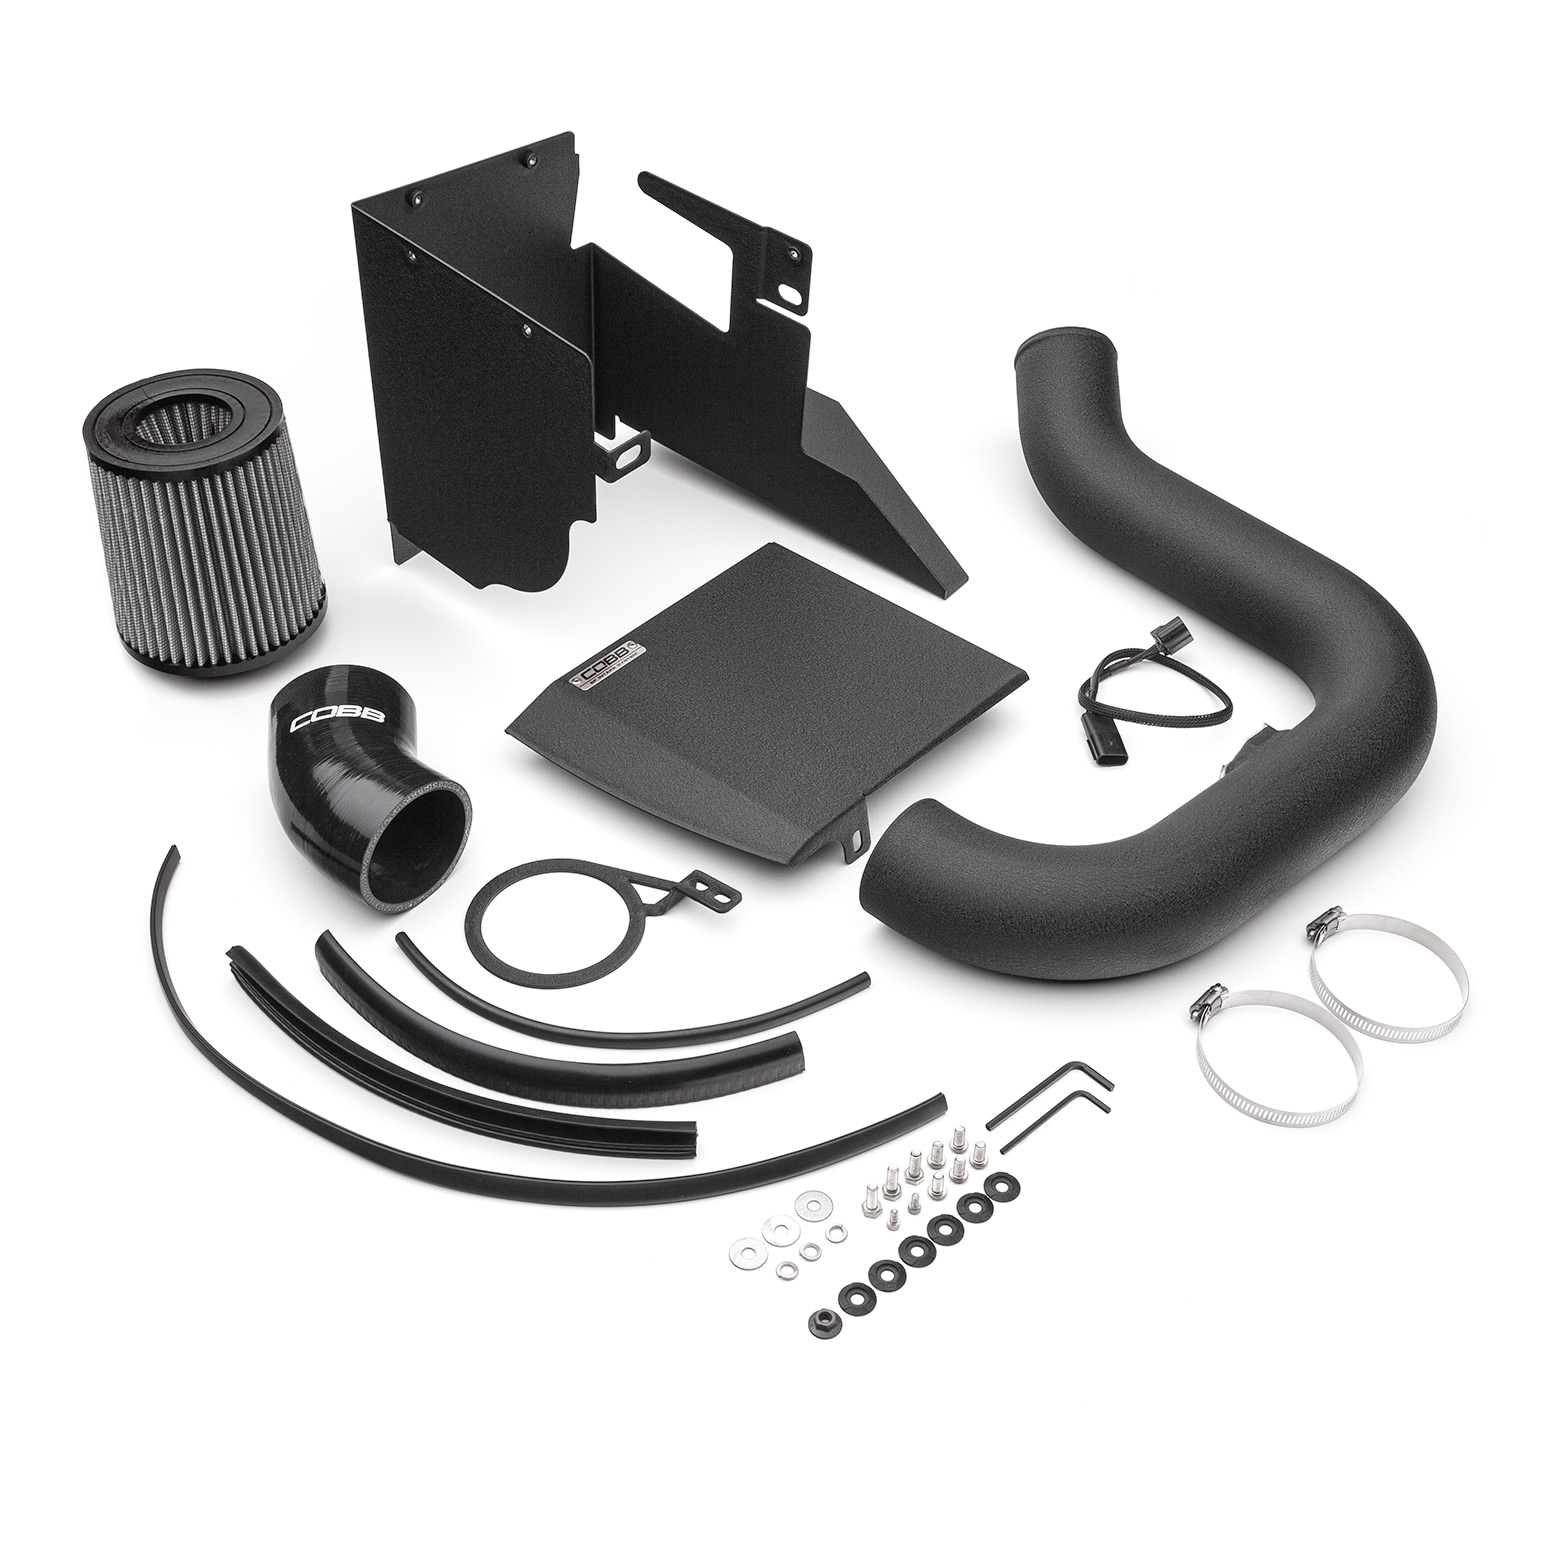 Subaru Stage 2 + Big SF Power Package Titanium (Non-Resonated J-Pipe) WRX Sedan 6MT 2015-2019